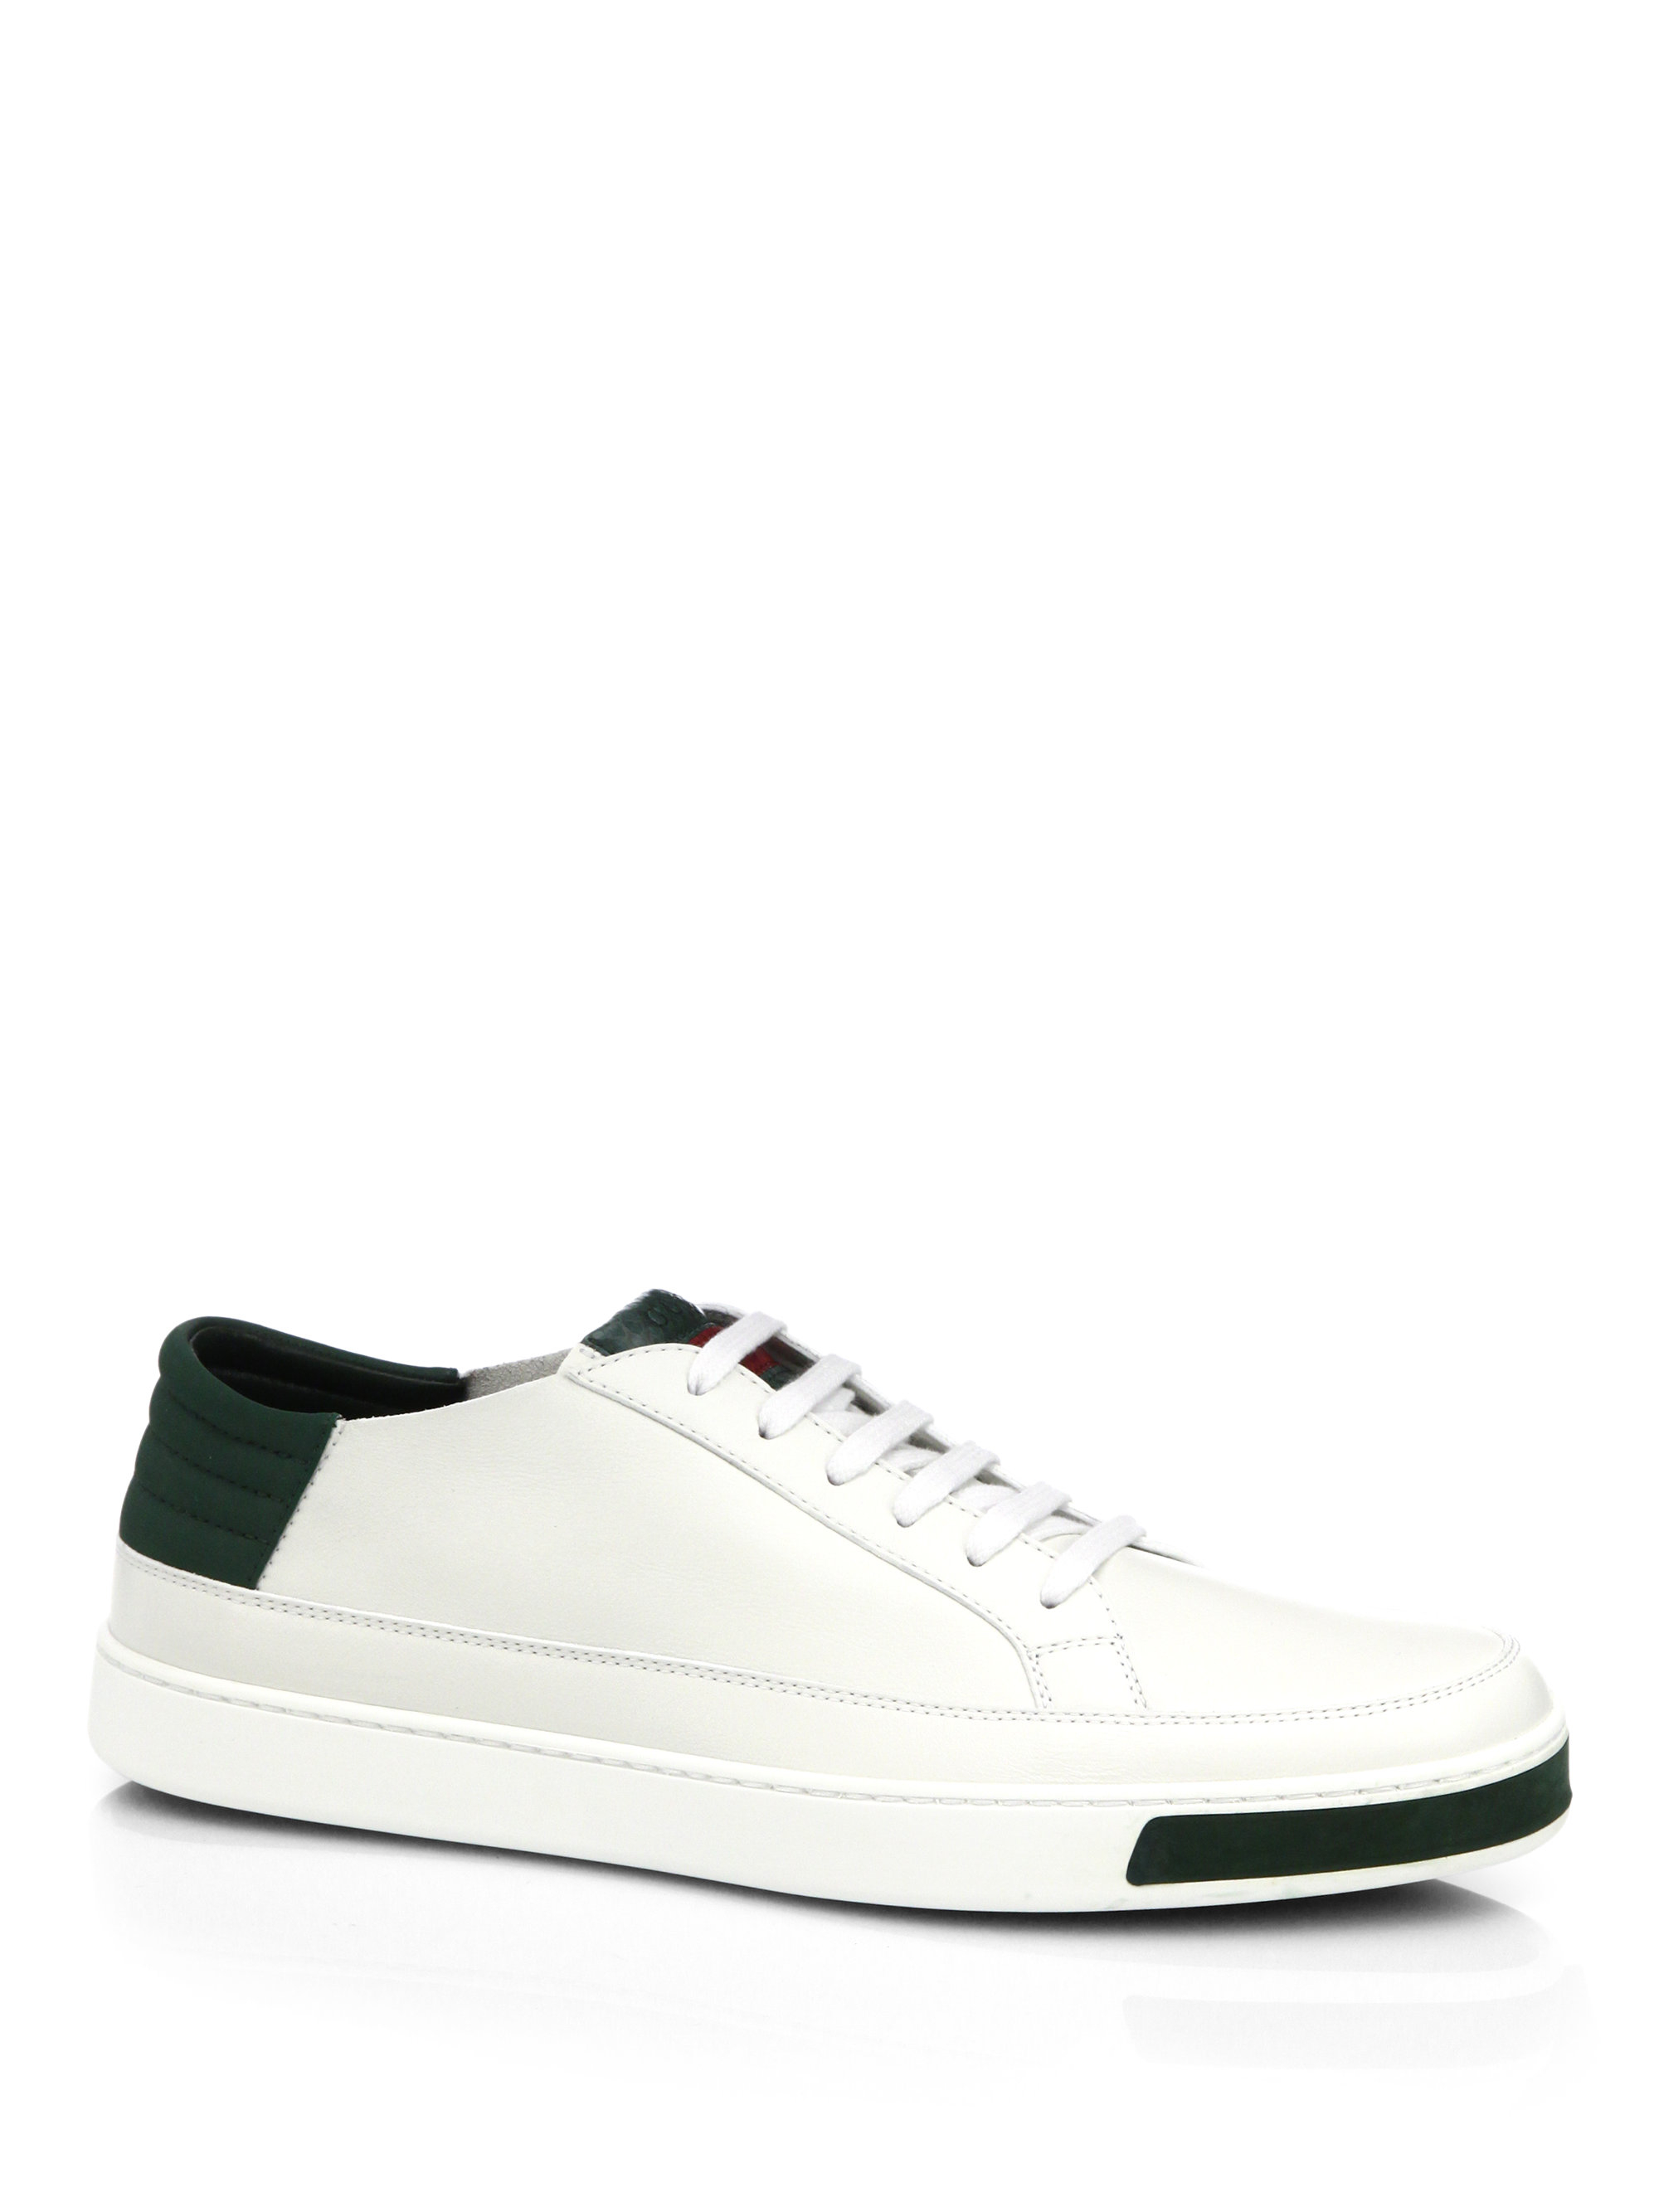 Gucci Leather Suede Lizard Low Top Sneakers In White For Men Lyst